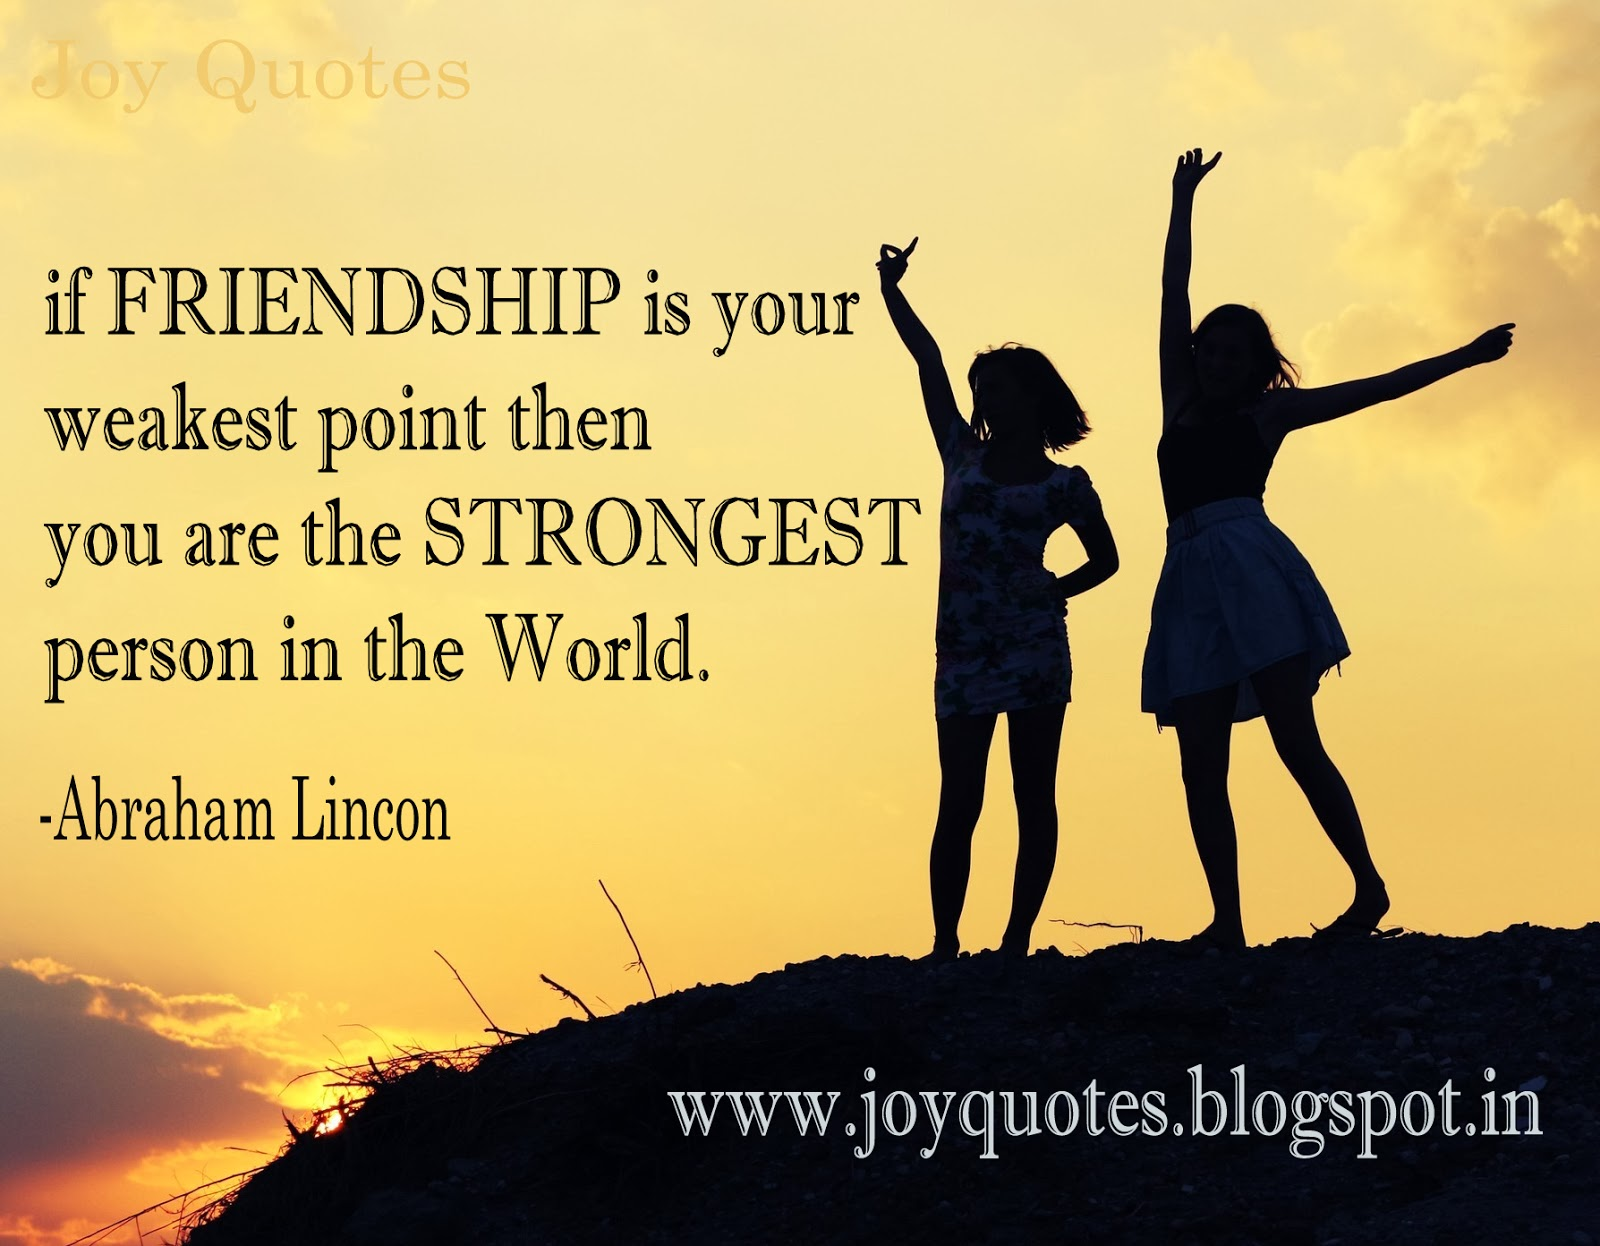 Quotes About Friendship With Pictures Funny Friendship Quotes Images Free Download Friends Quotes Funny